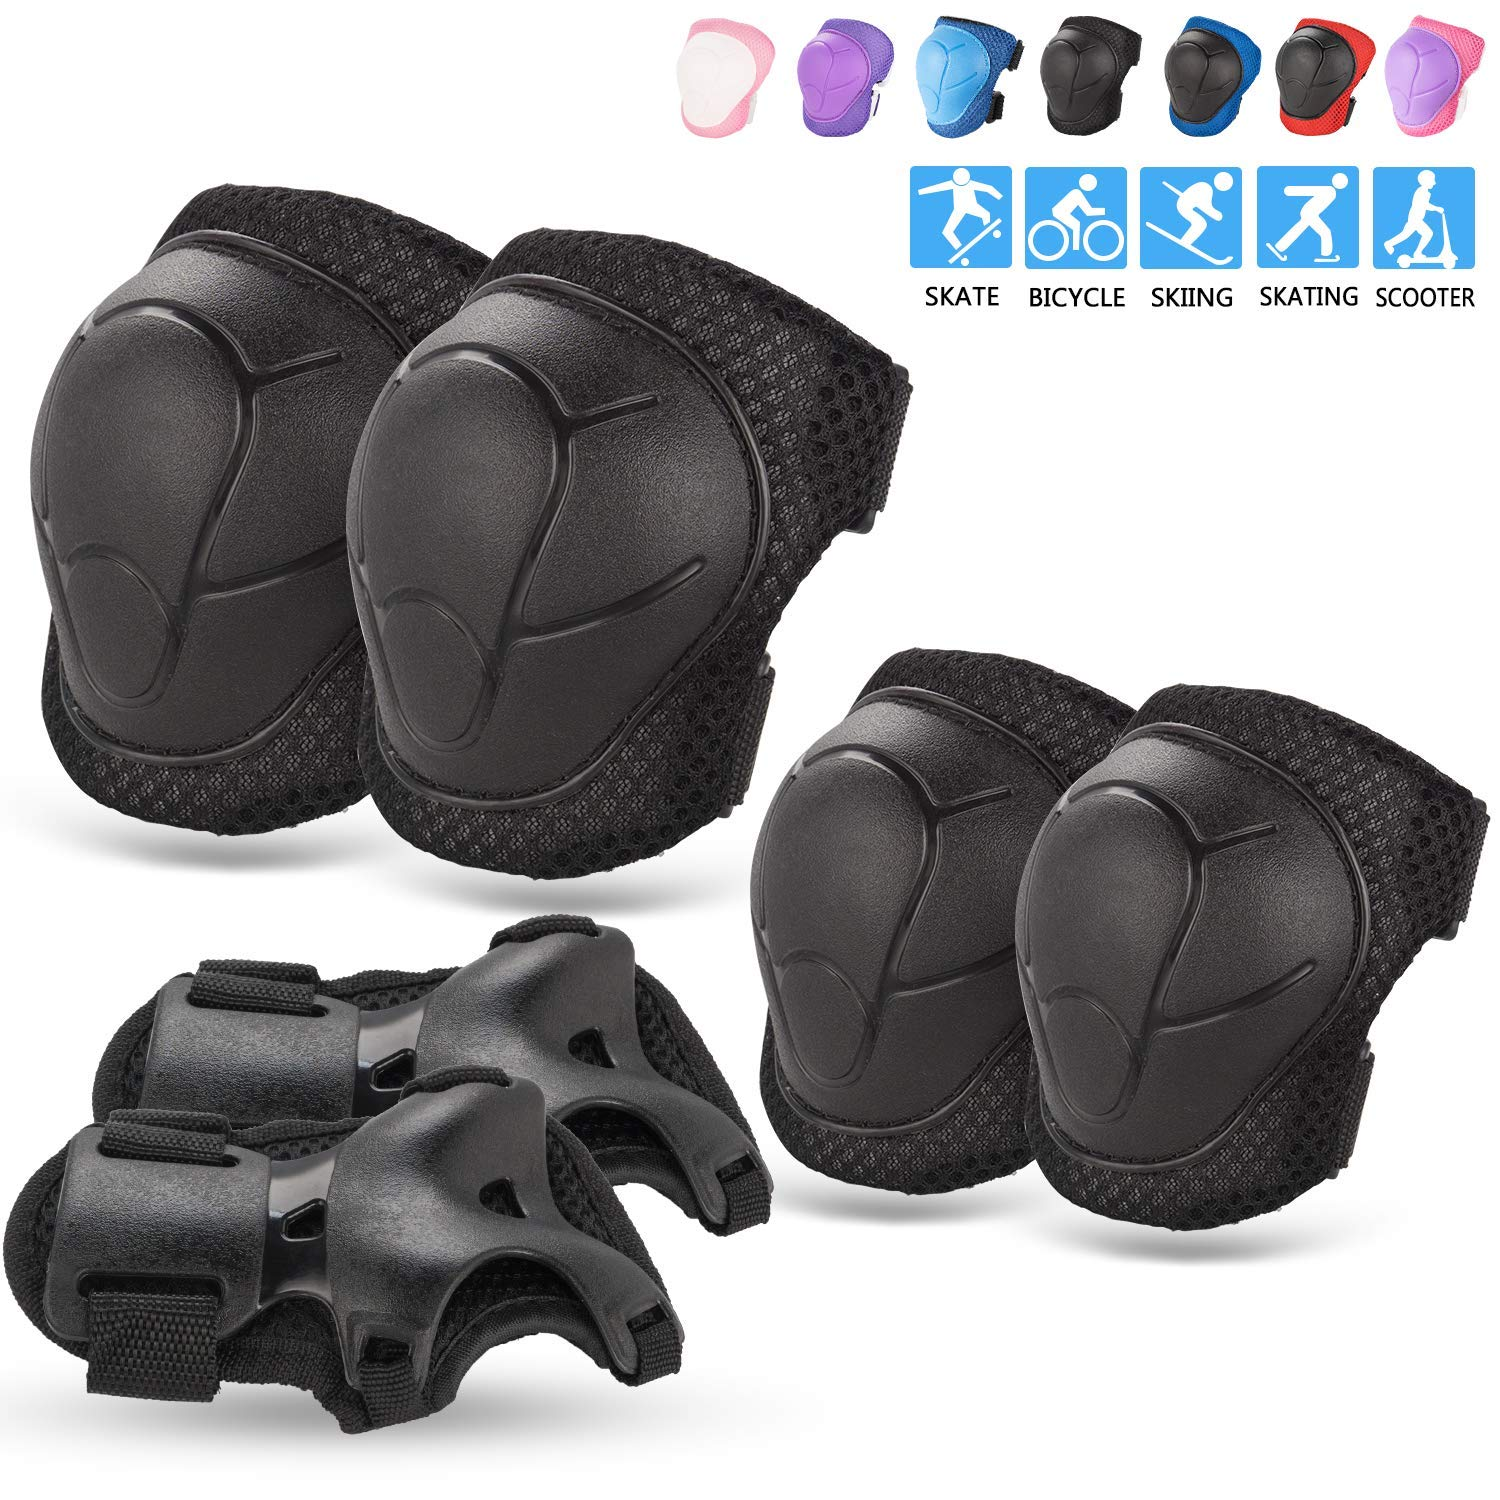 BOSONER Kids Youth Knee Pad Elbow Pads Guards Protective Gear Set for Rollerblade Roller Skates Cycling BMX Bike Skateboard Inline Skatings Scooter Riding Sports